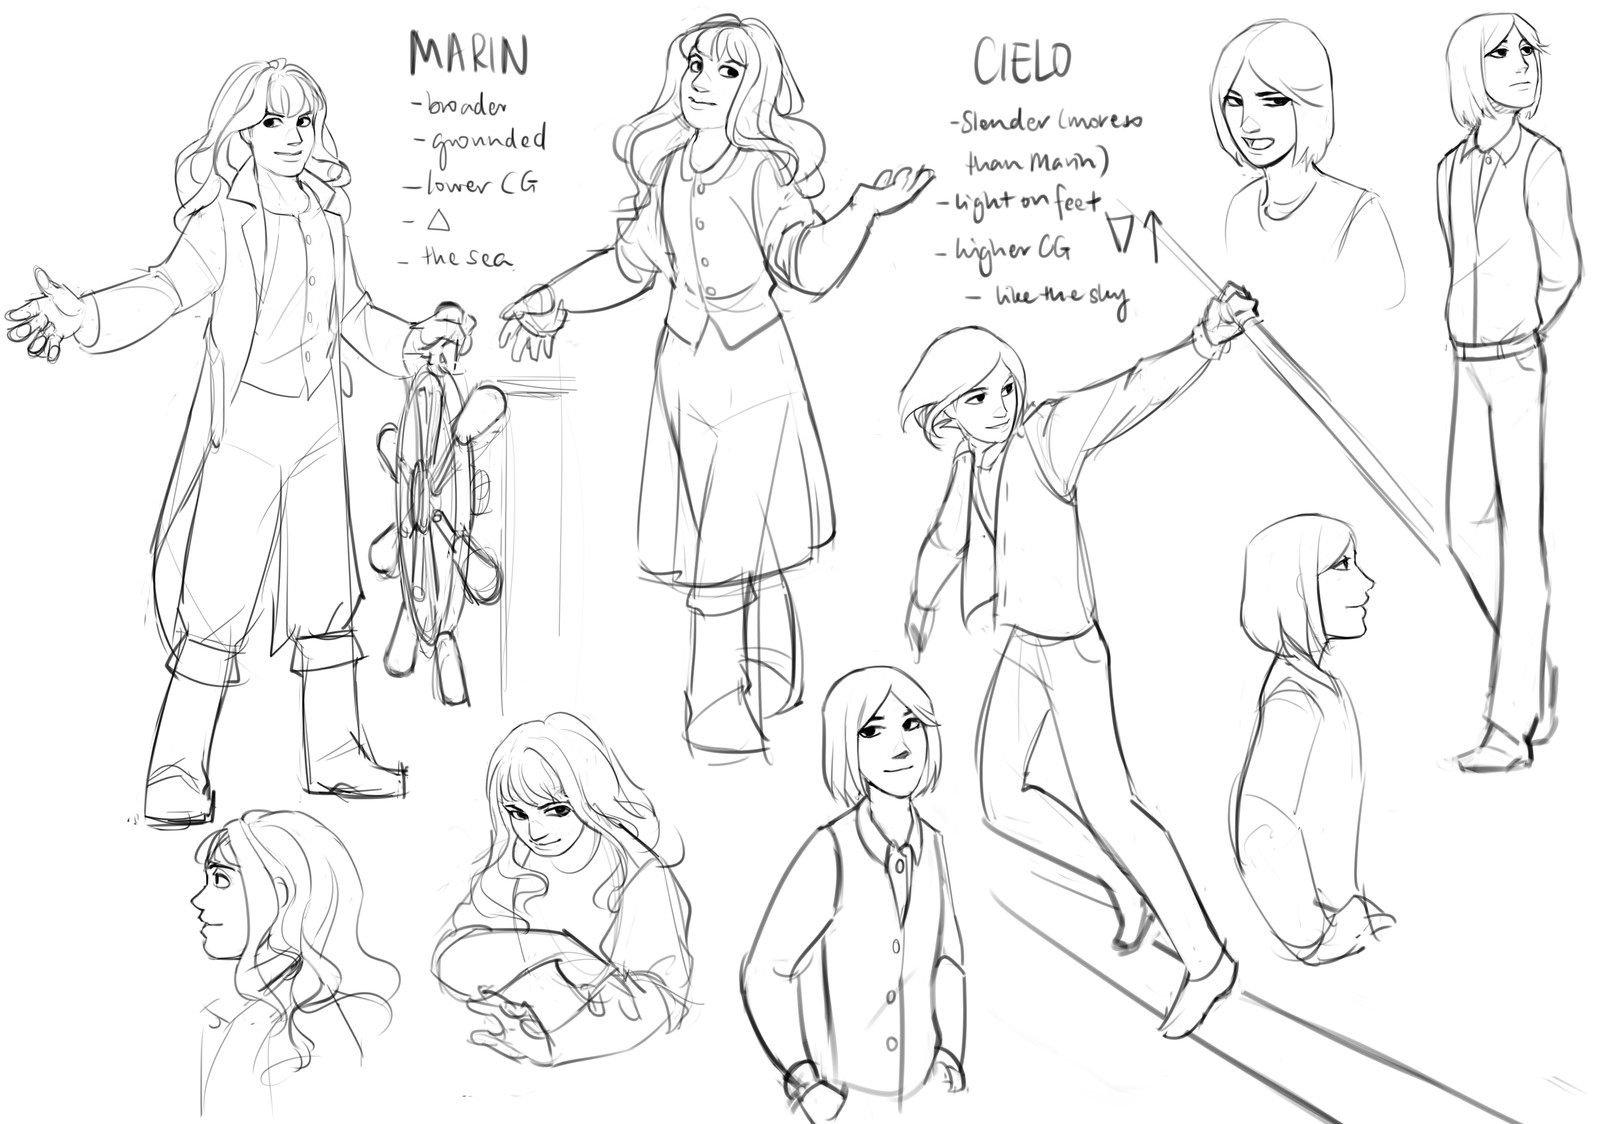 Character sheet (their designs have changed slightly ever since).